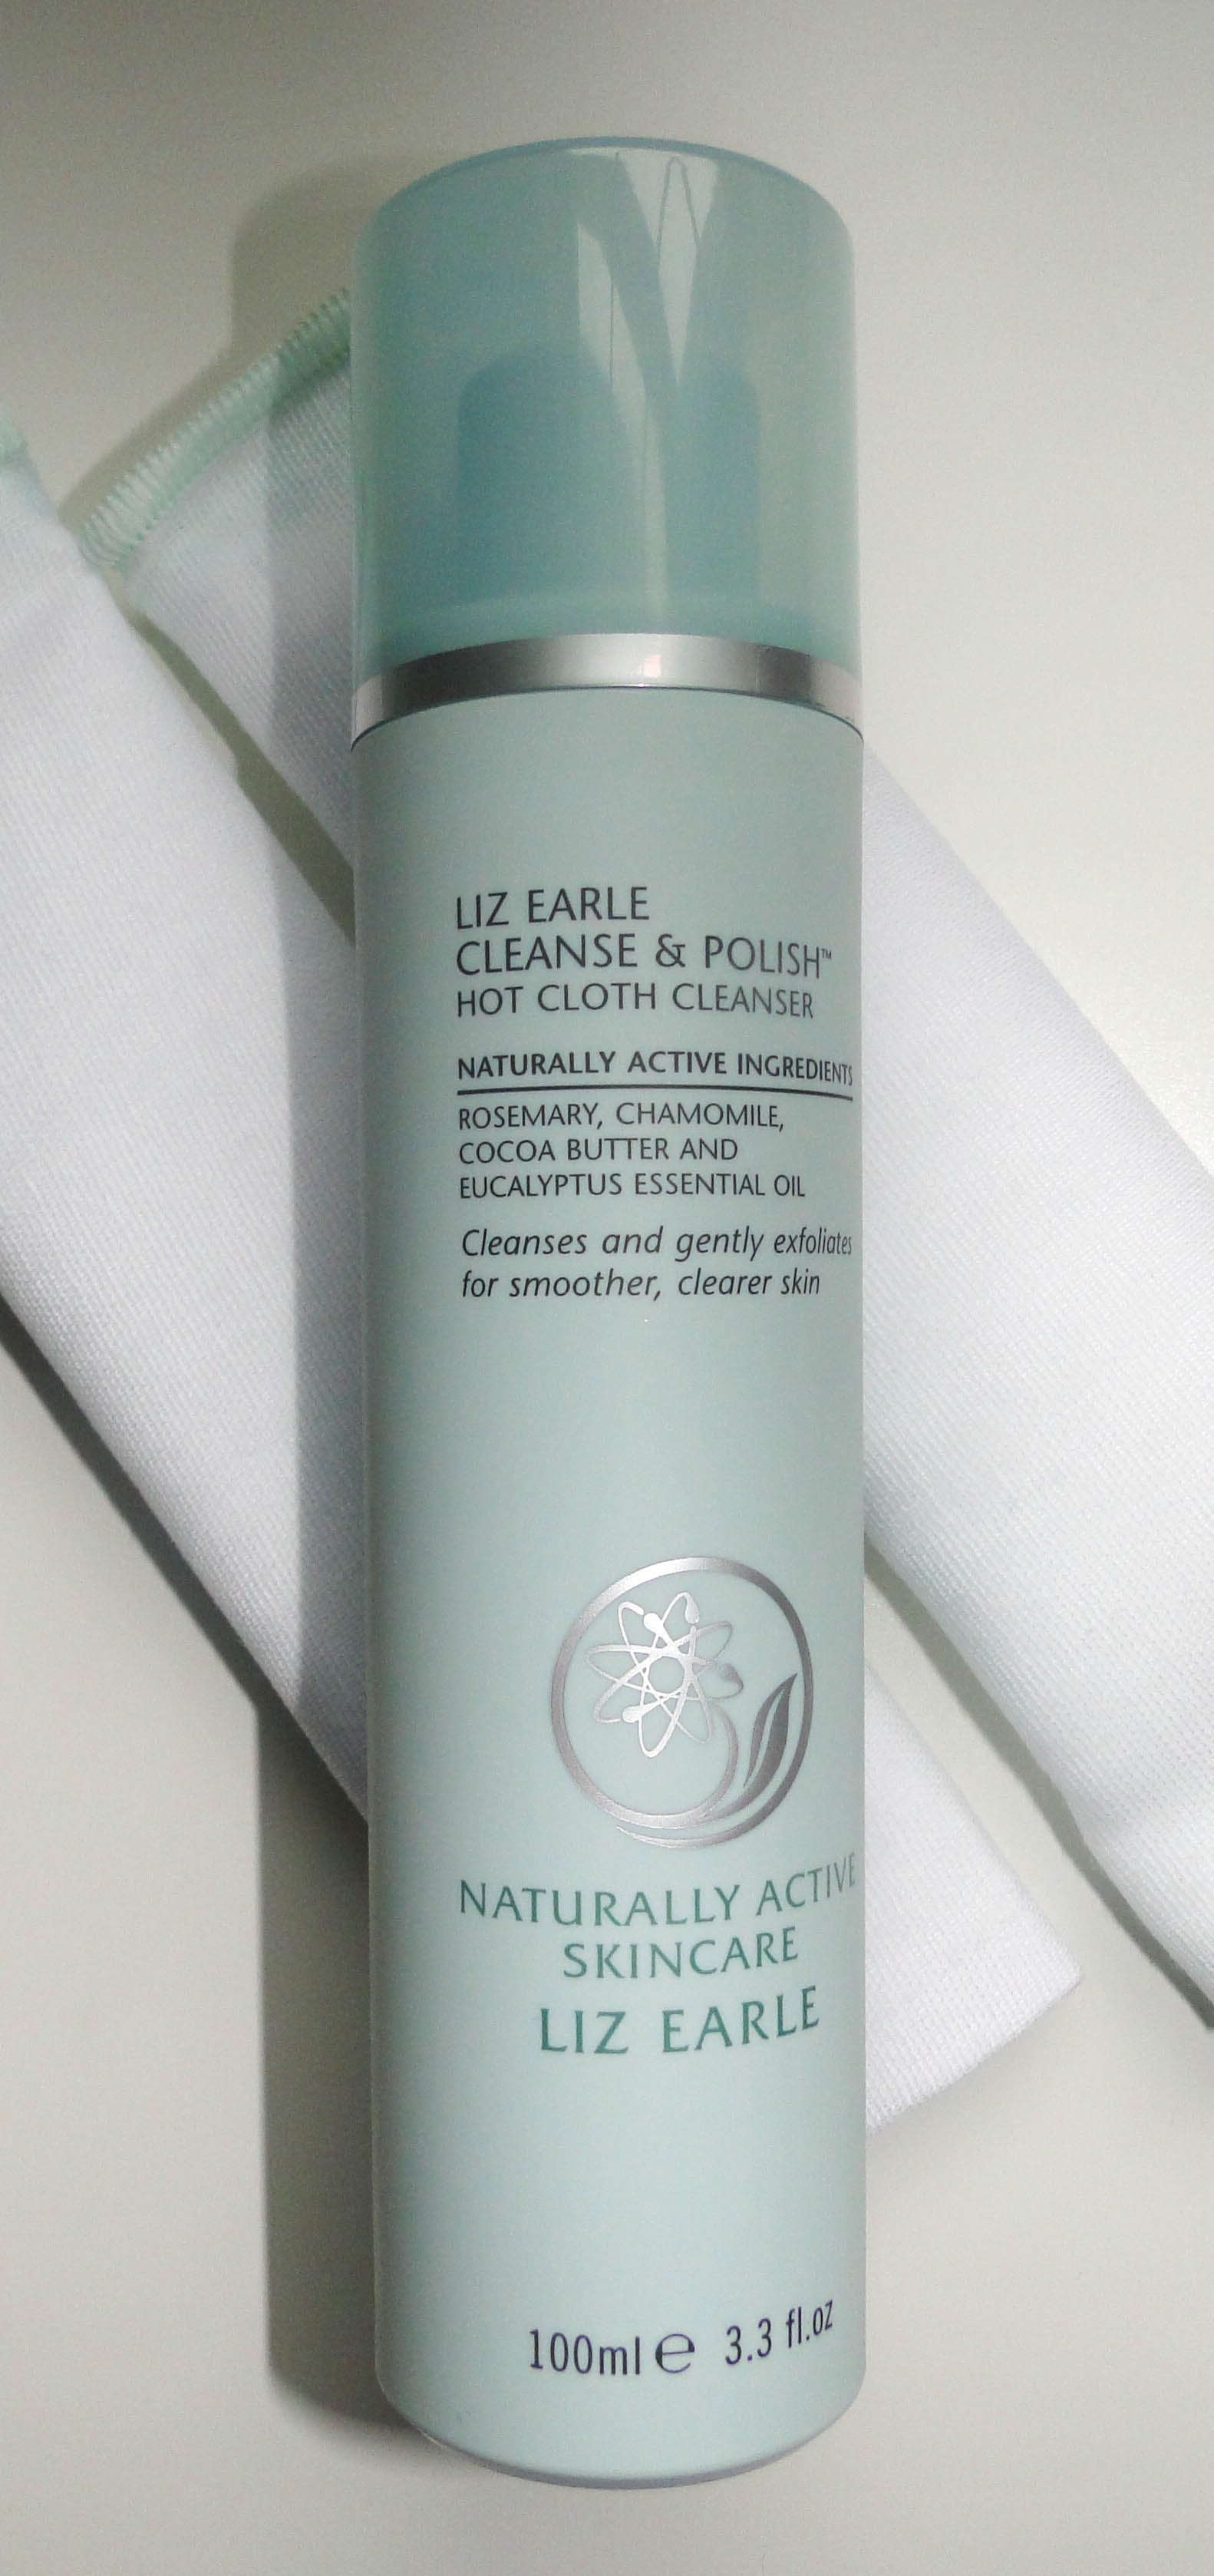 Liz Earle Cleanse & Polish Hot Cloth Cleanser 3